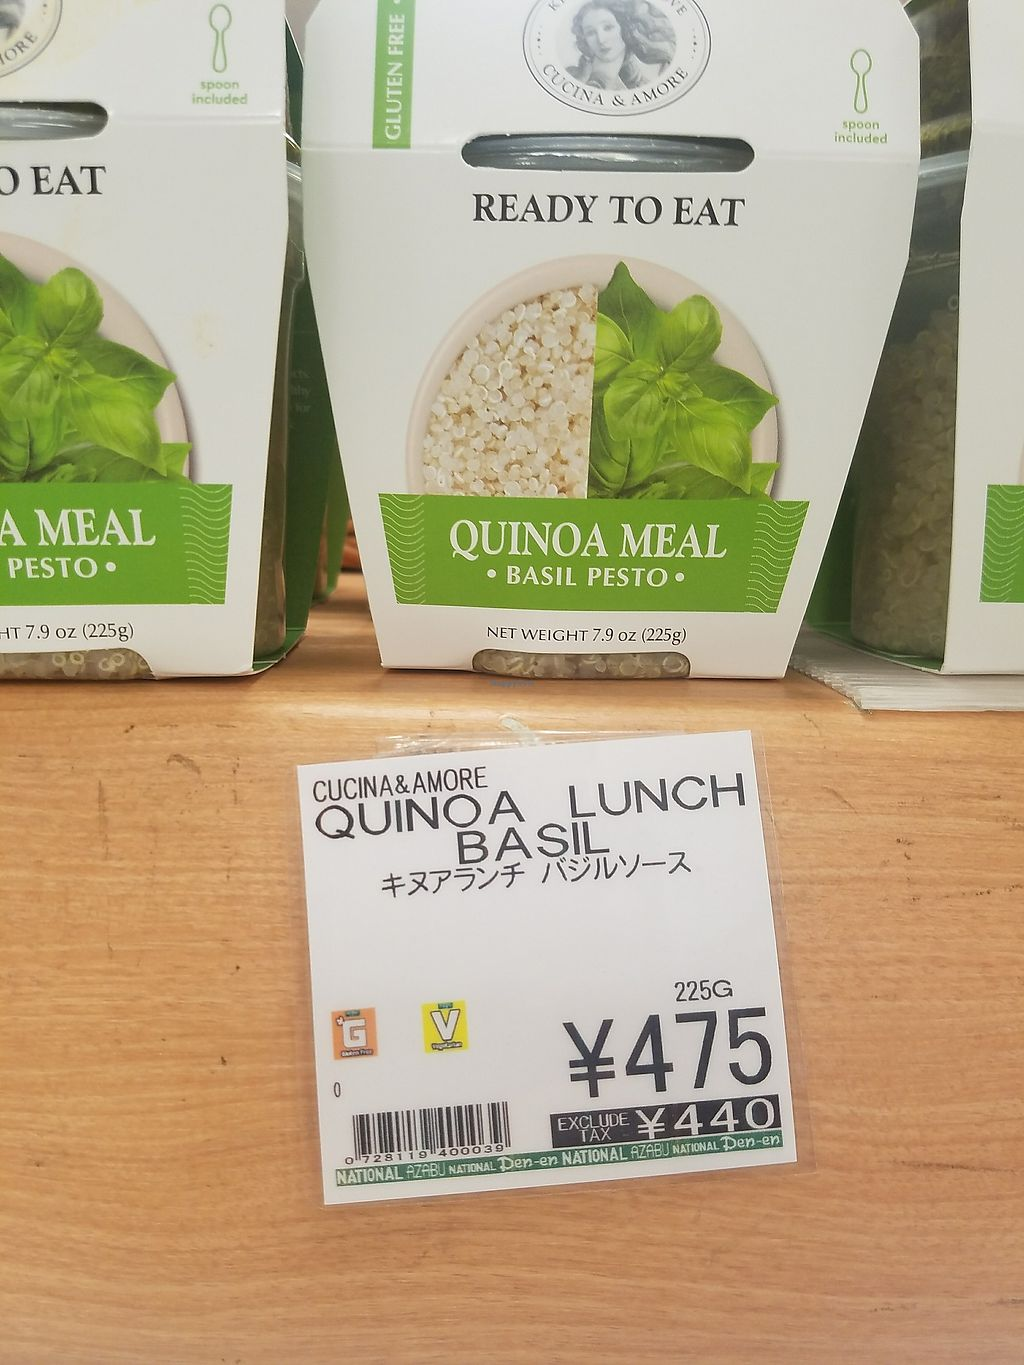 Cucina And Amore Quinoa Review National Azabu Tokyo Other Happycow